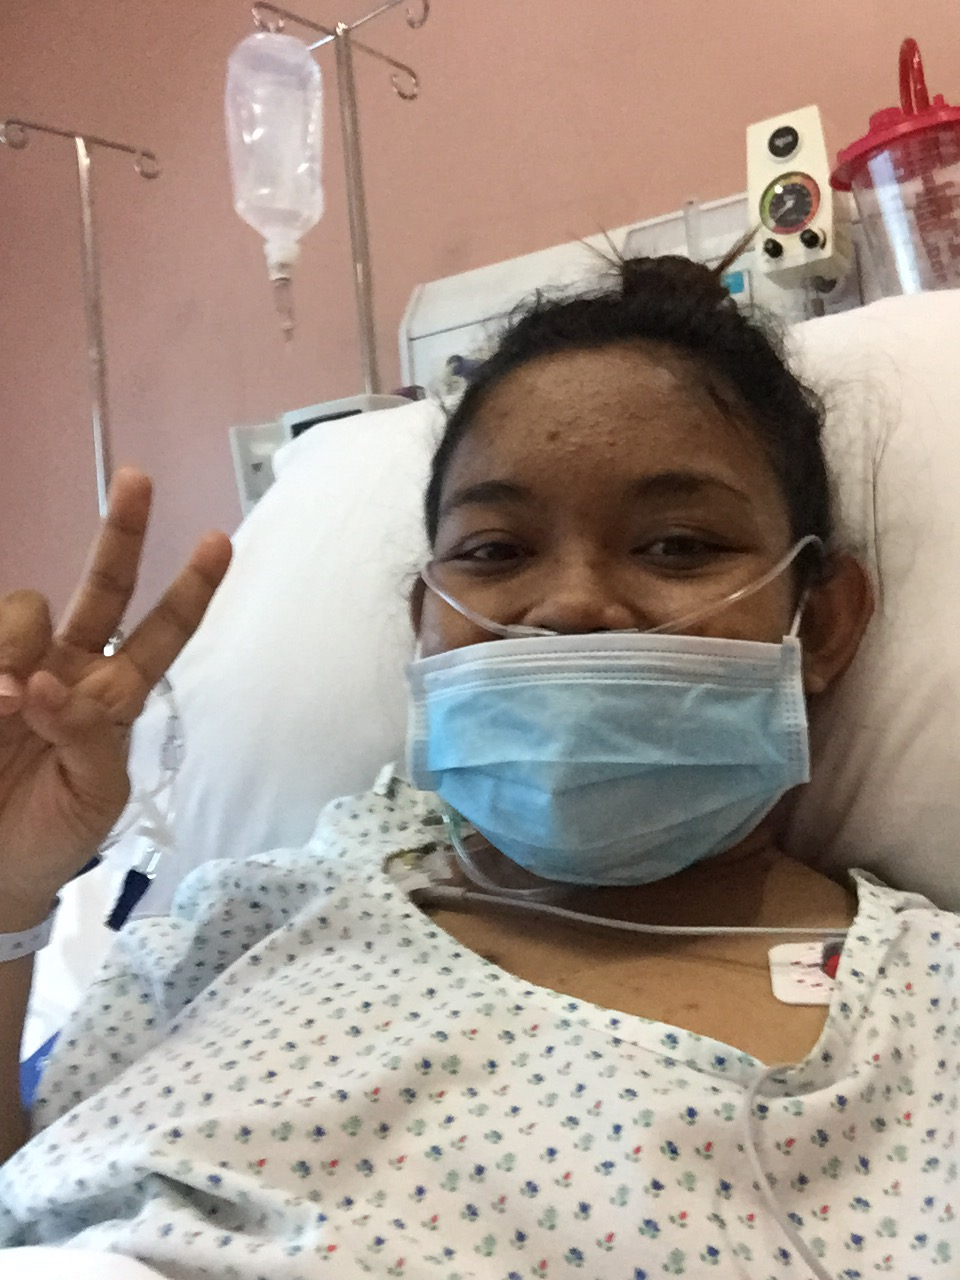 May 30, 2016, Monday. 5:06 PM. Just six hours after my kidney transplant. On oxygen support. My body is sore but my soul is rejoicing kaya selfie muna with peace sign!